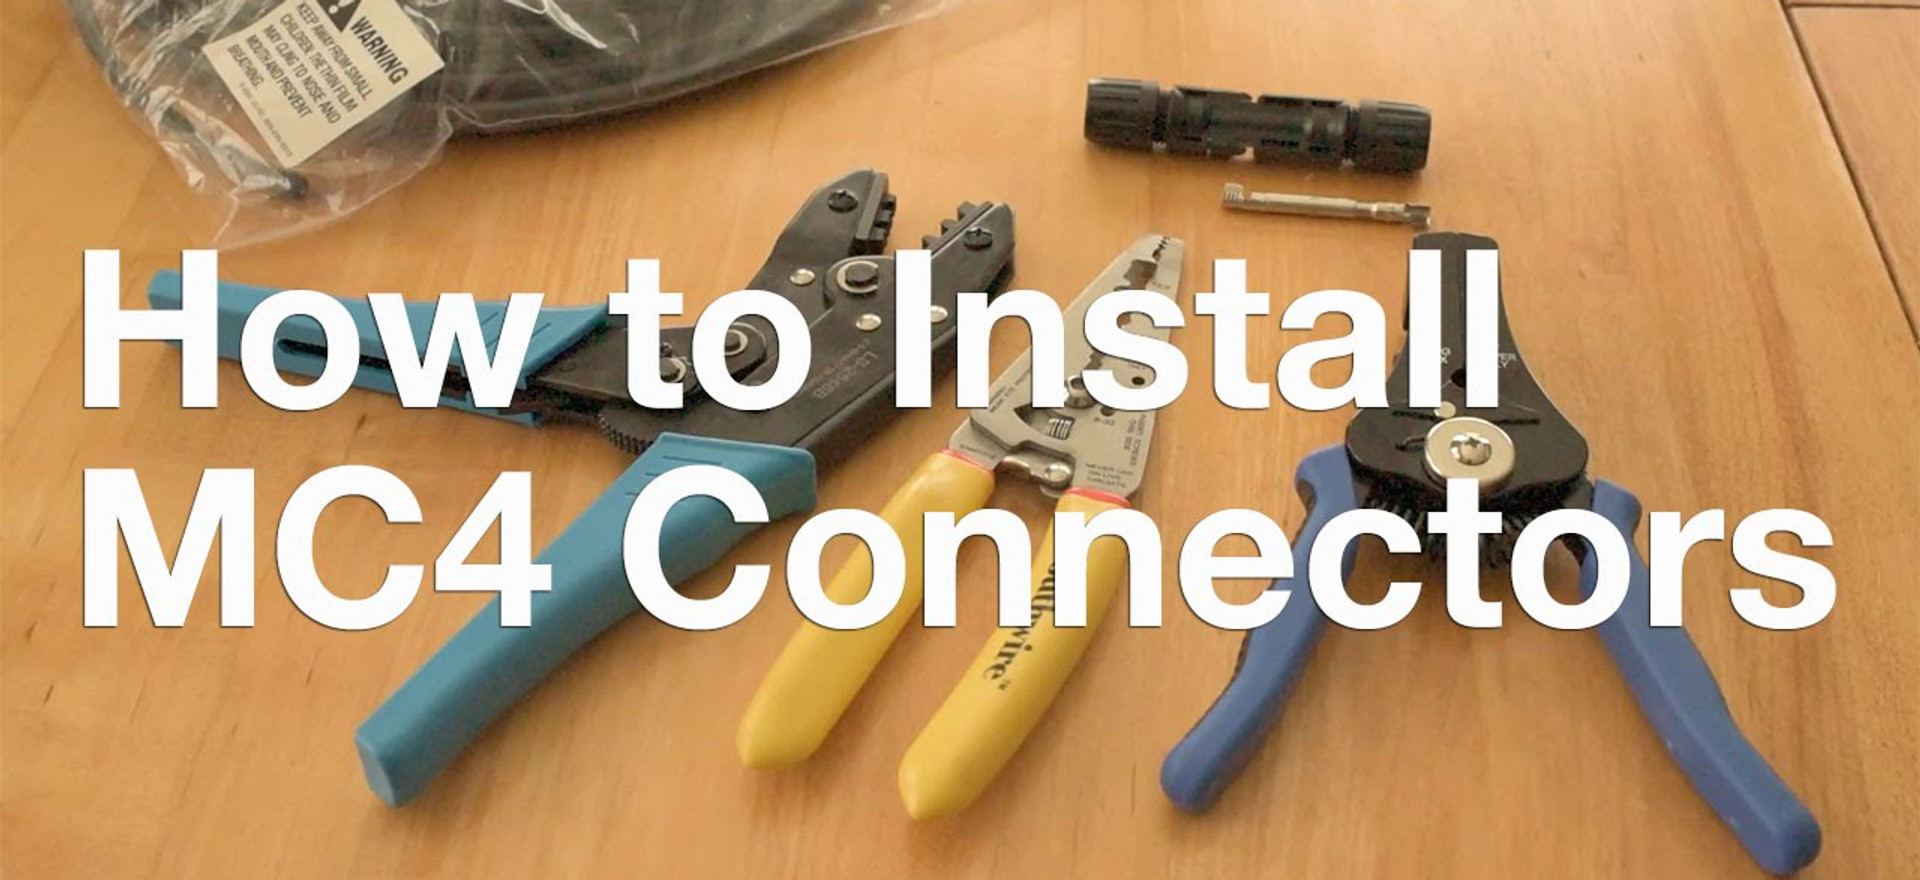 How to Install MC4 Connectors